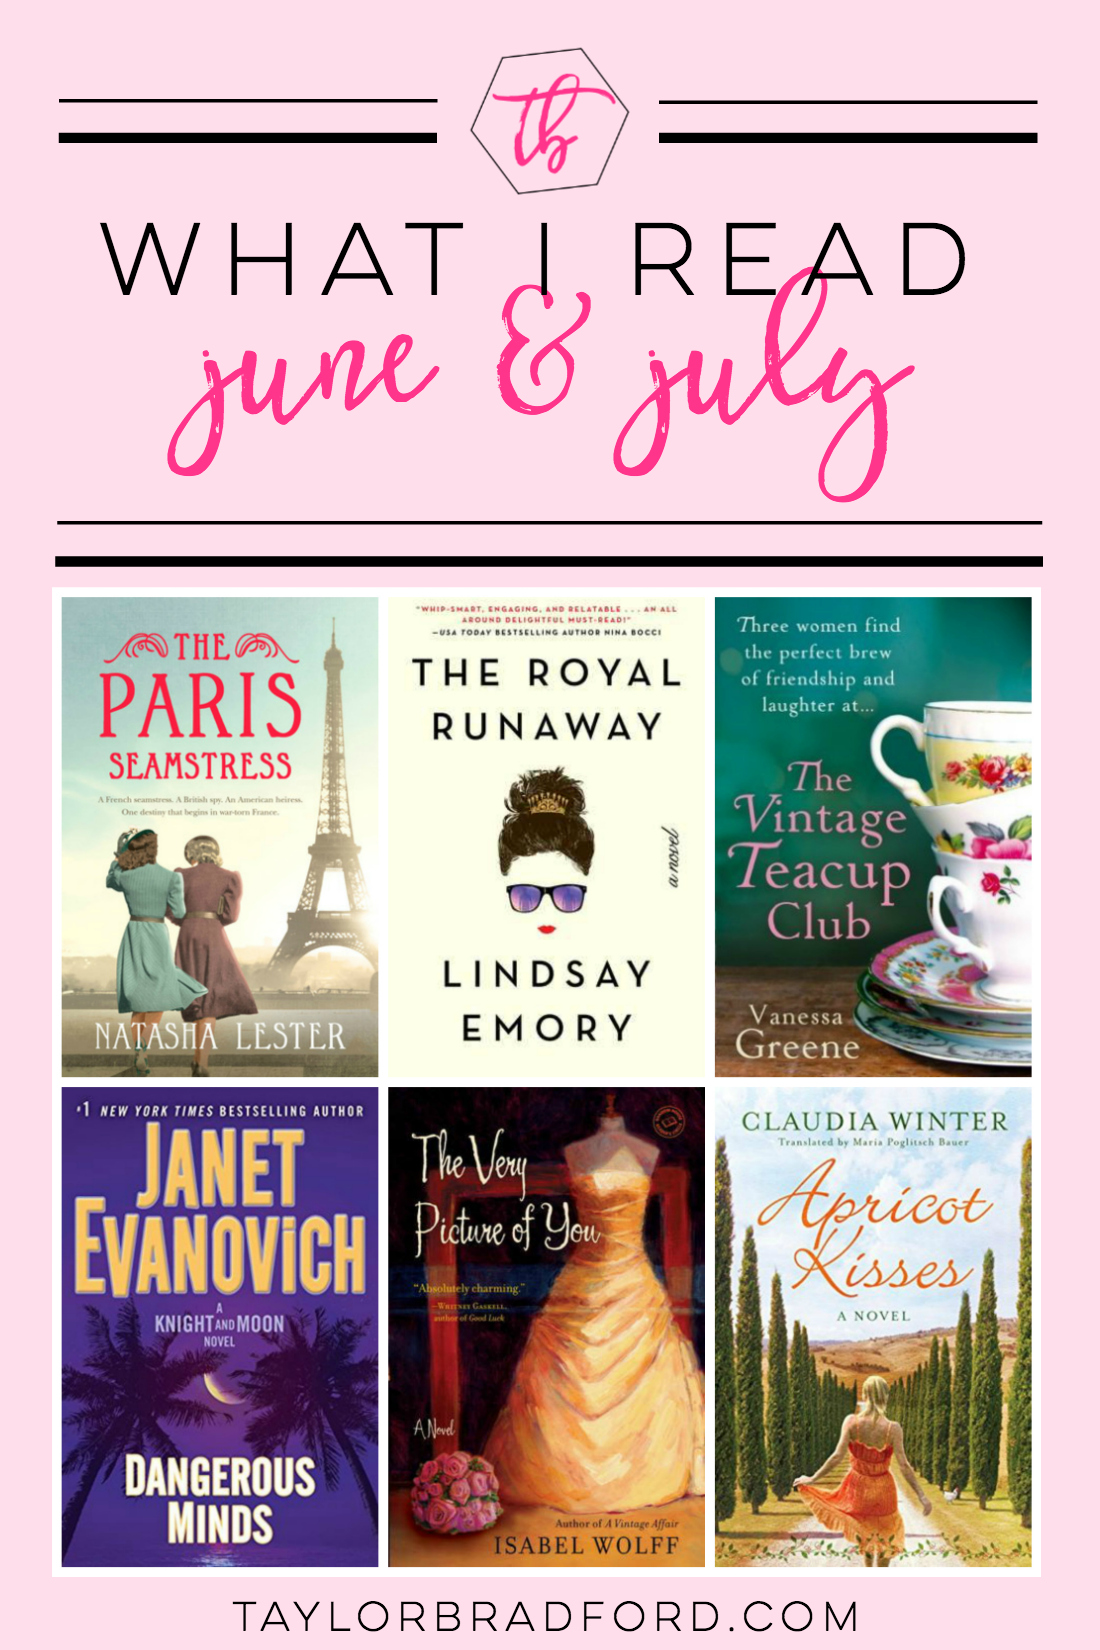 Looking for something to read? Take a peek at what I read over the last 2 months. A little bit of everything between classic chick lit to historical fiction, you're sure to find something to add to your TBR list!